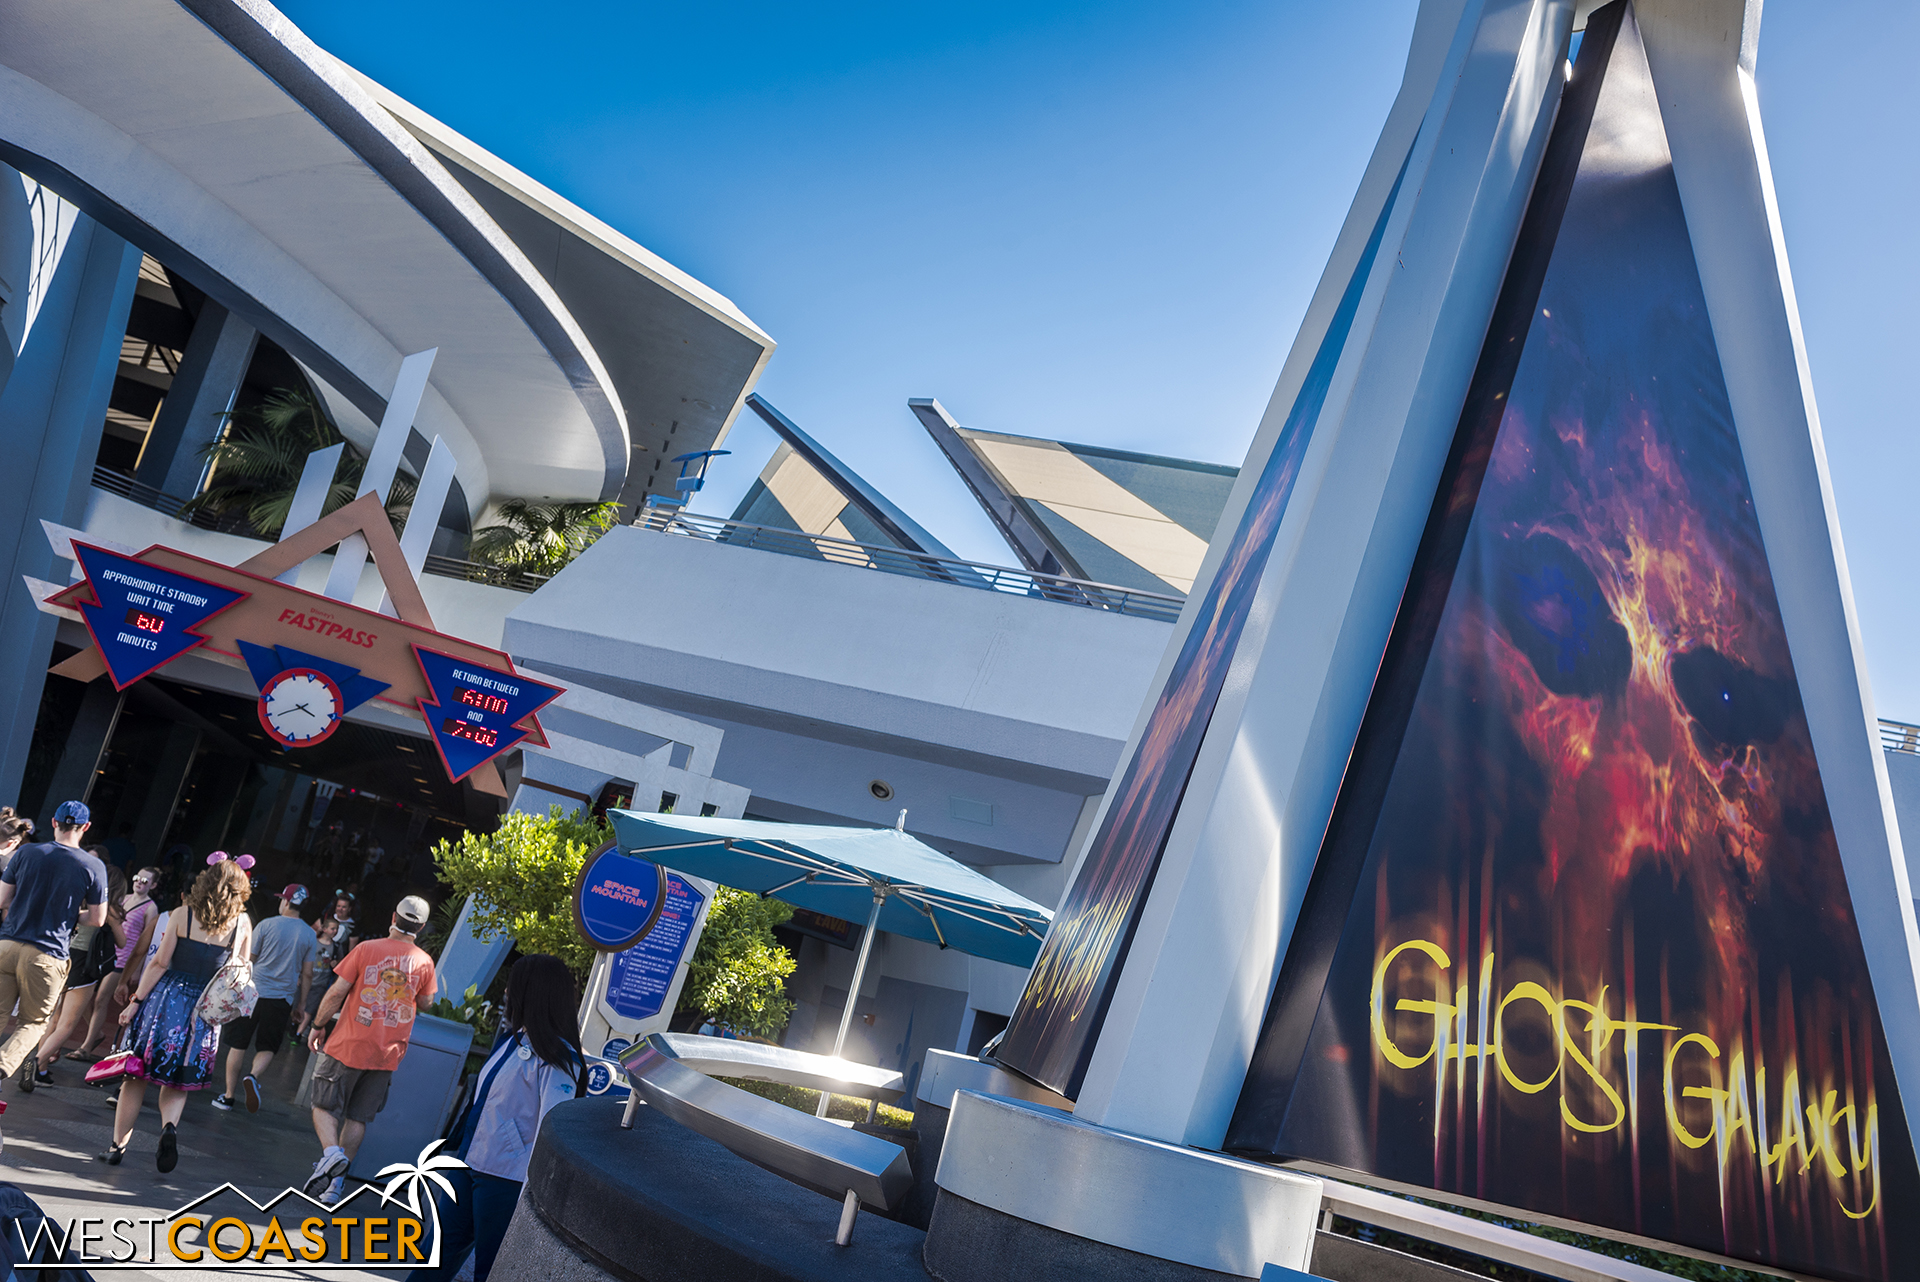 Ghost Galaxy is back, which means expect longer lines at Space Mountain than usual.